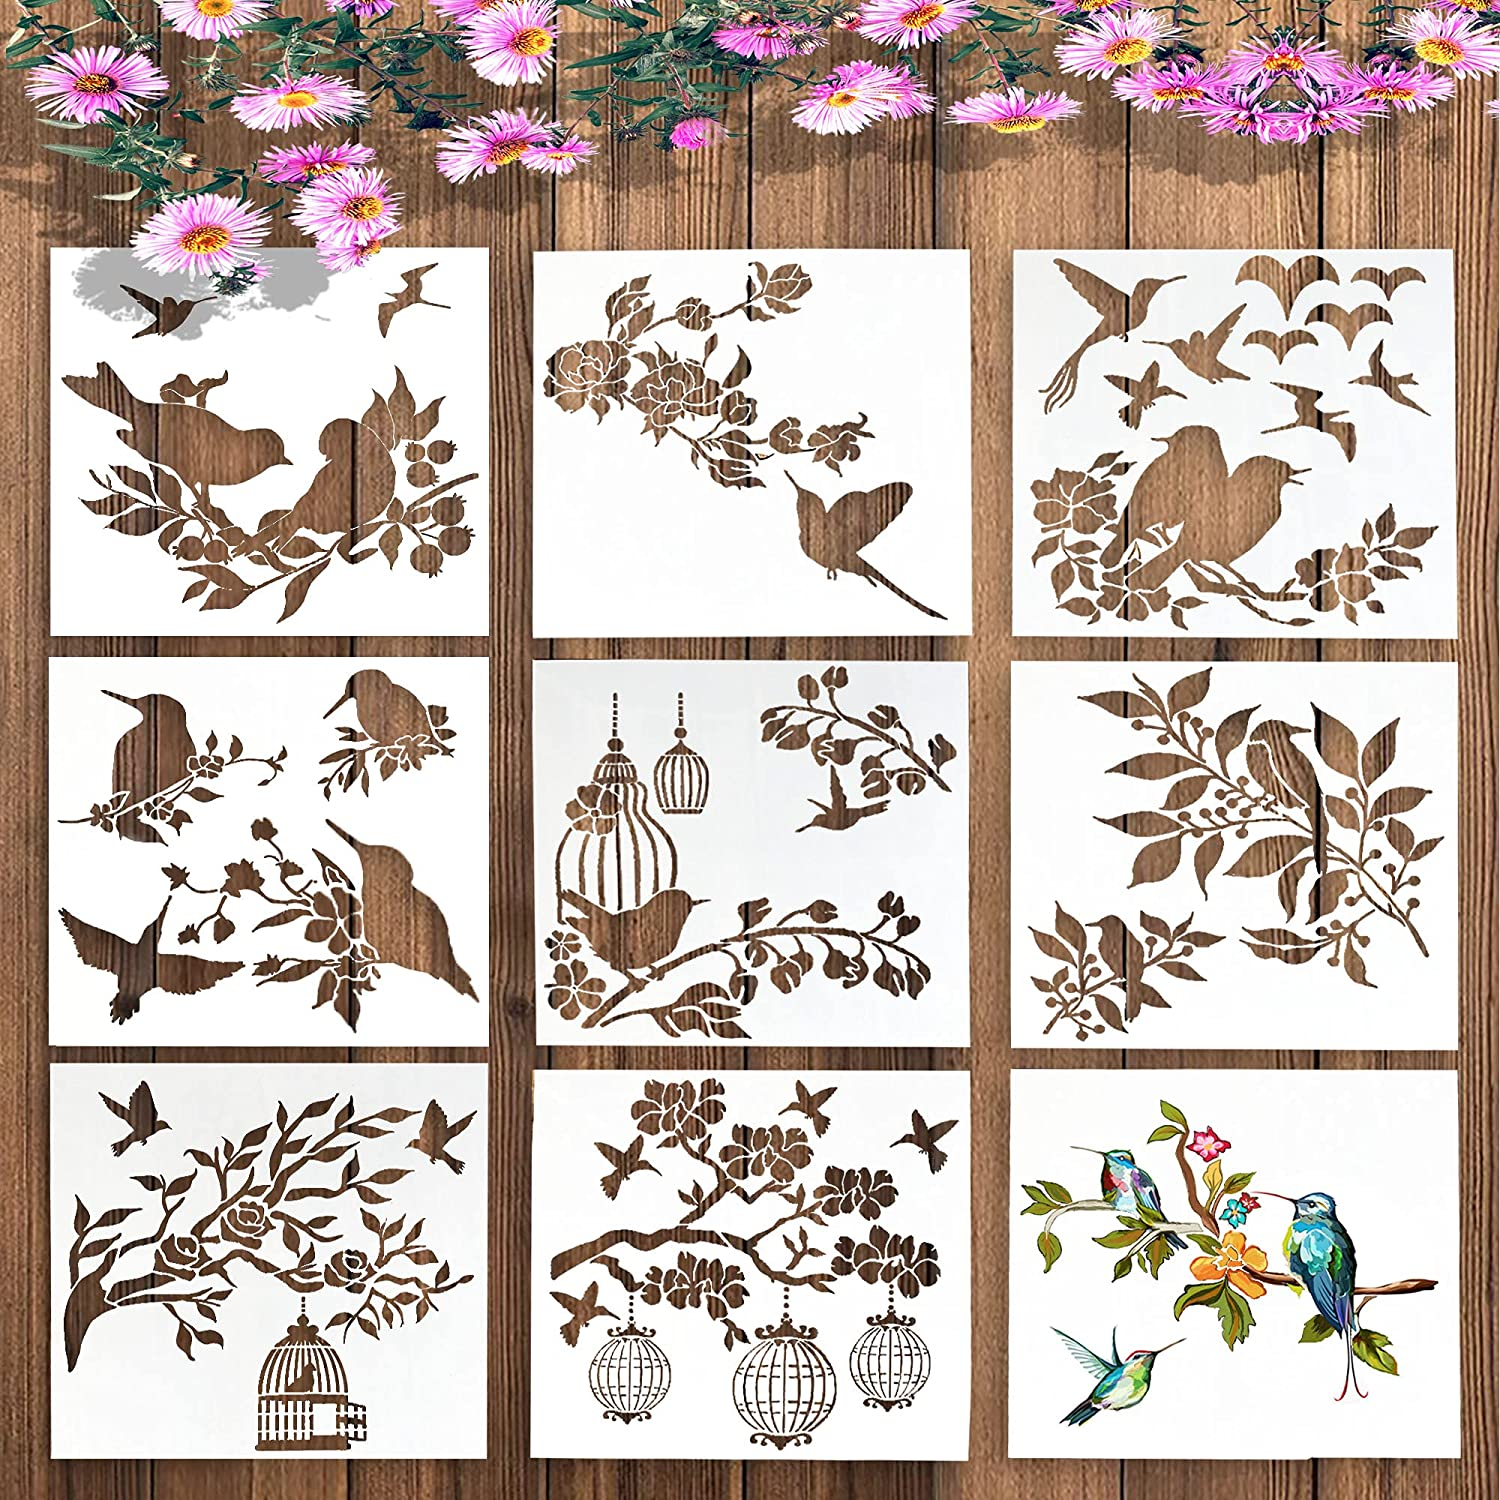 9PCS Birds Stencils for Painting-Large Flying Bird Stencil-Reusable Bird Tree Branches Stencil-Bird Flower Leaf Drawing, Bird Stencils For Walls Furniture Wood, Arts And Crafts, Kids, Plank 9 x 9 Inch